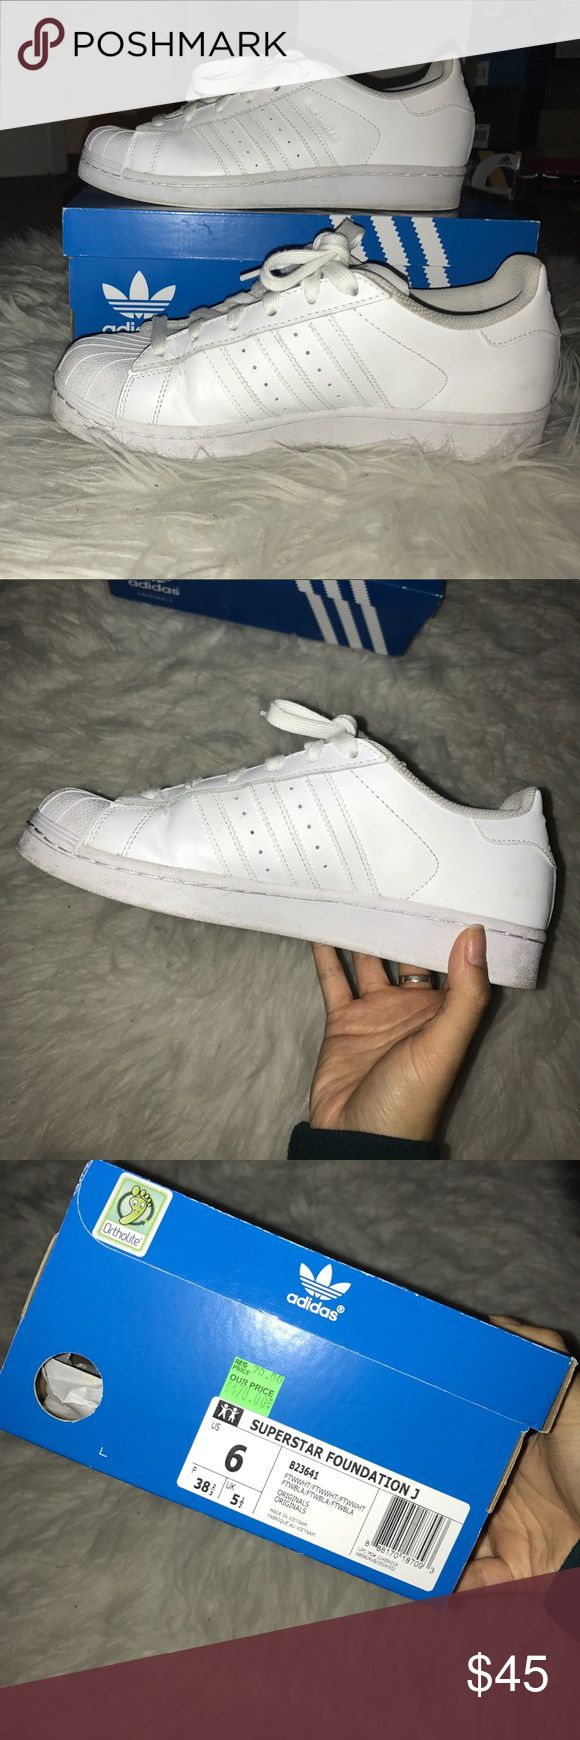 Adidas superstars Barely worn adidas all white superstars. Still have the box. adidas Shoes Sneakers